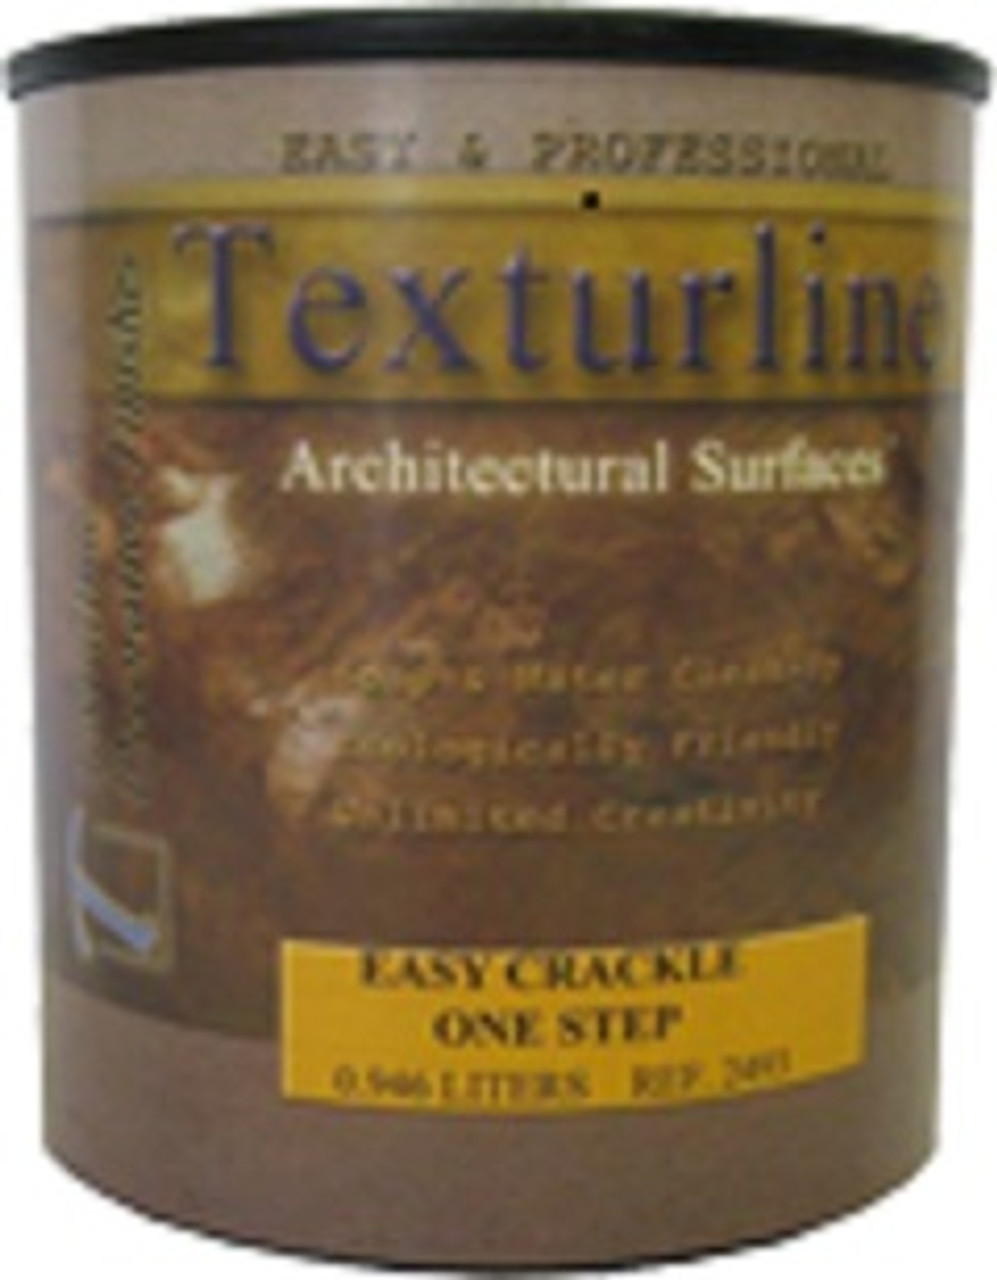 Texturline Easy Crackle - One Step